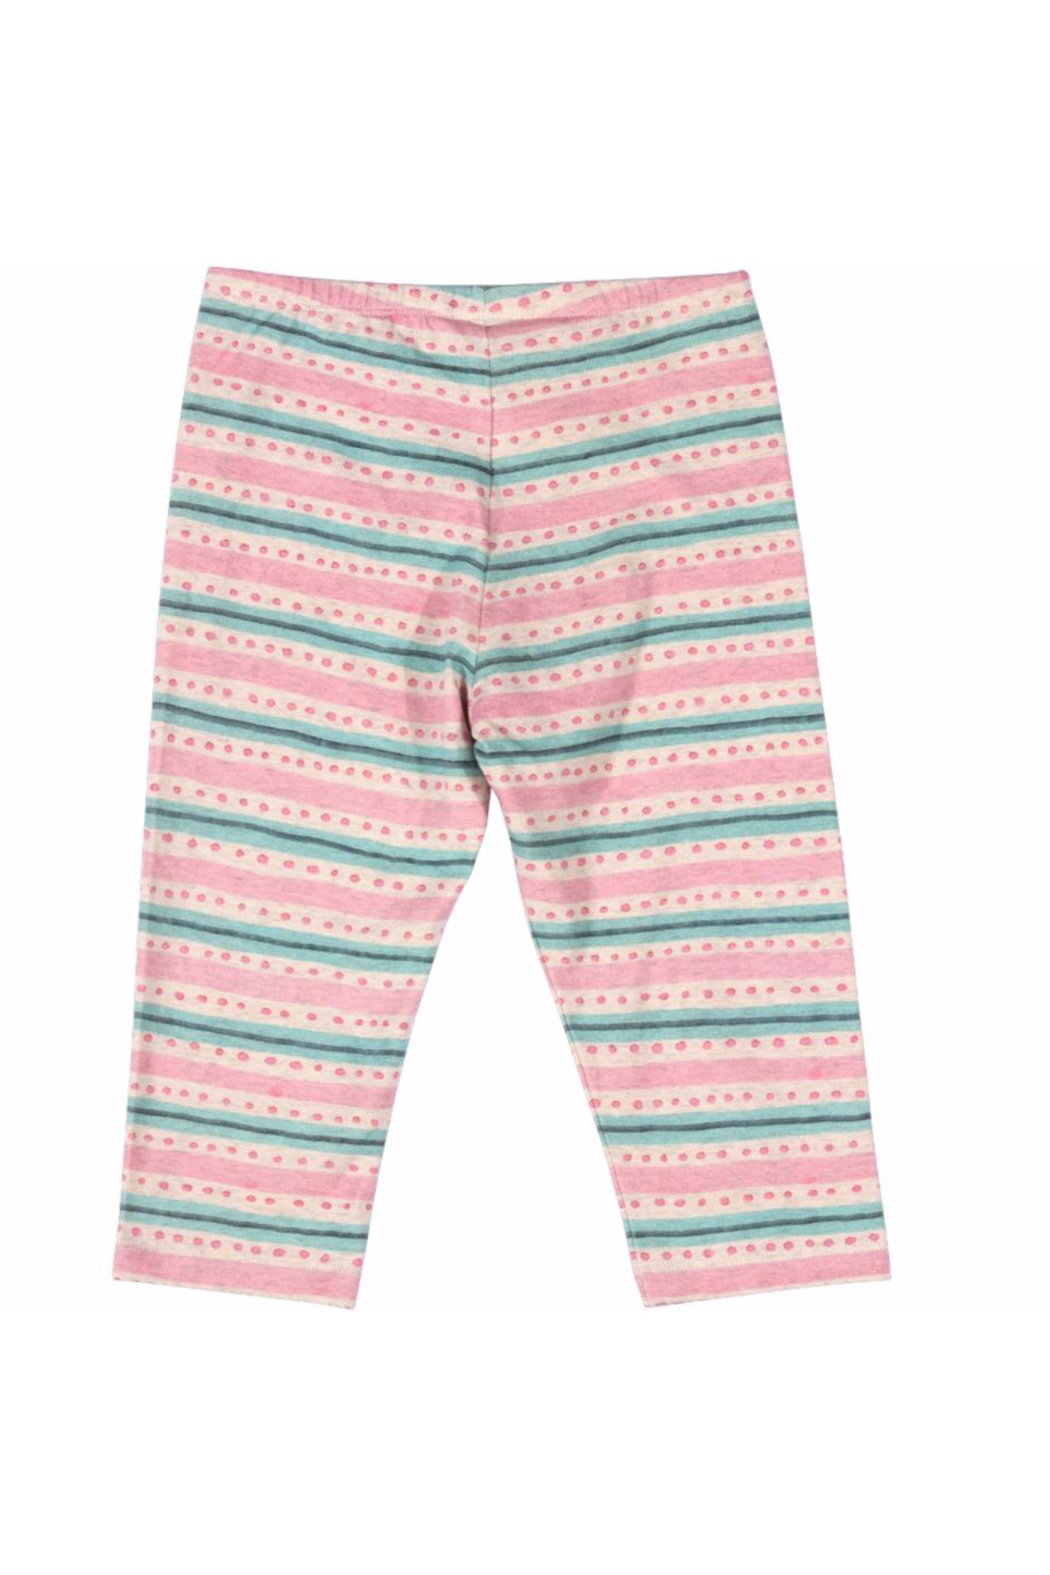 Paper Wings Capri Texta Stripe with Spots Leggings - Front Full Image